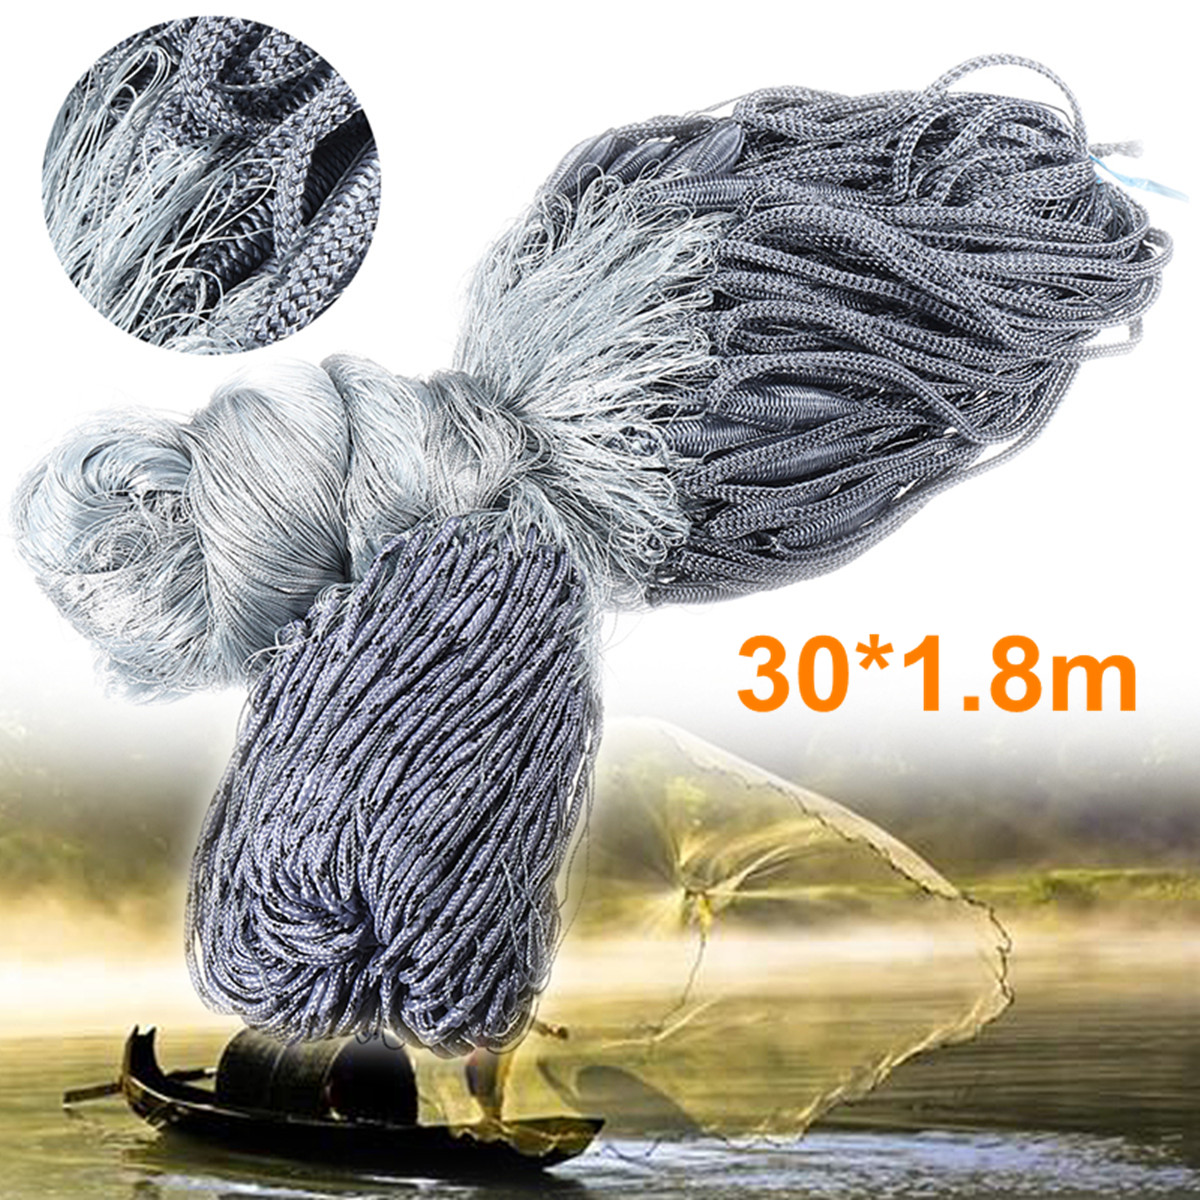 ZANLURE 30×1.8m Nylon Outdoor Fishing Grill Net Mesh 4×4cm Fishing Tackle Trap Accessories